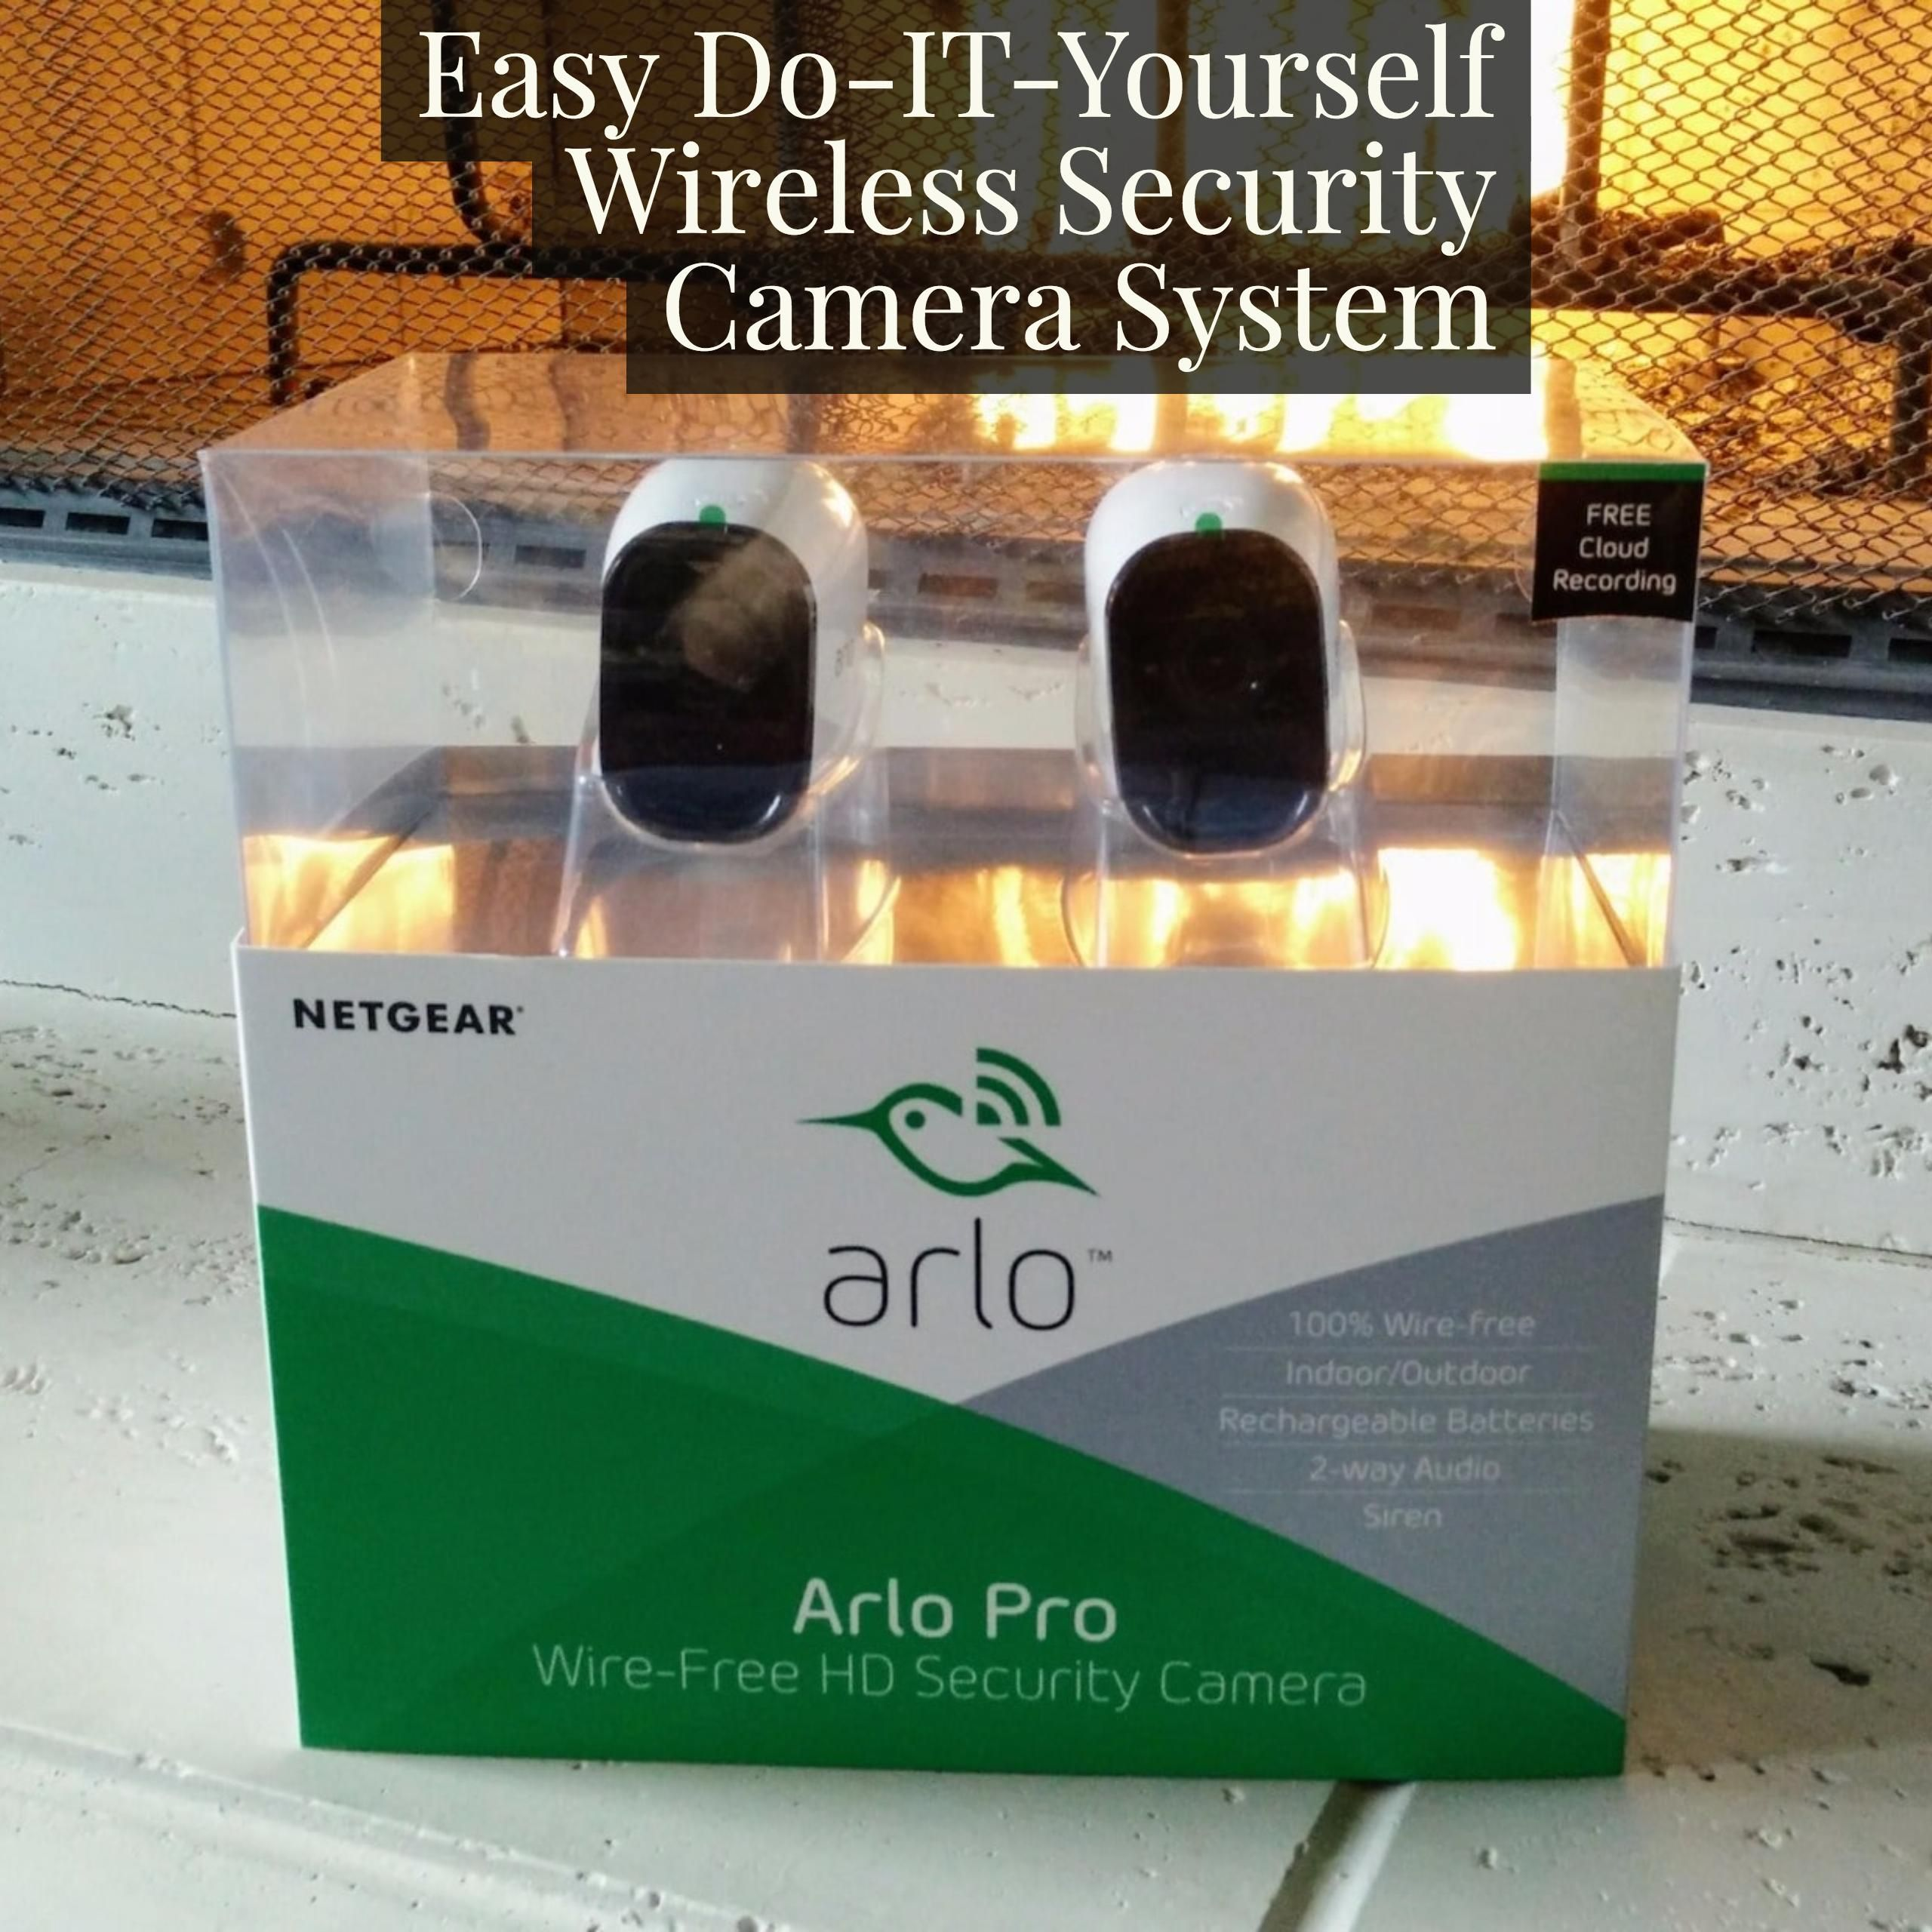 Netgear arlo pro wireless security camera system review easy home netgear arlo pro wireless security camera system review easy home setup do it yourself solutioingenieria Image collections